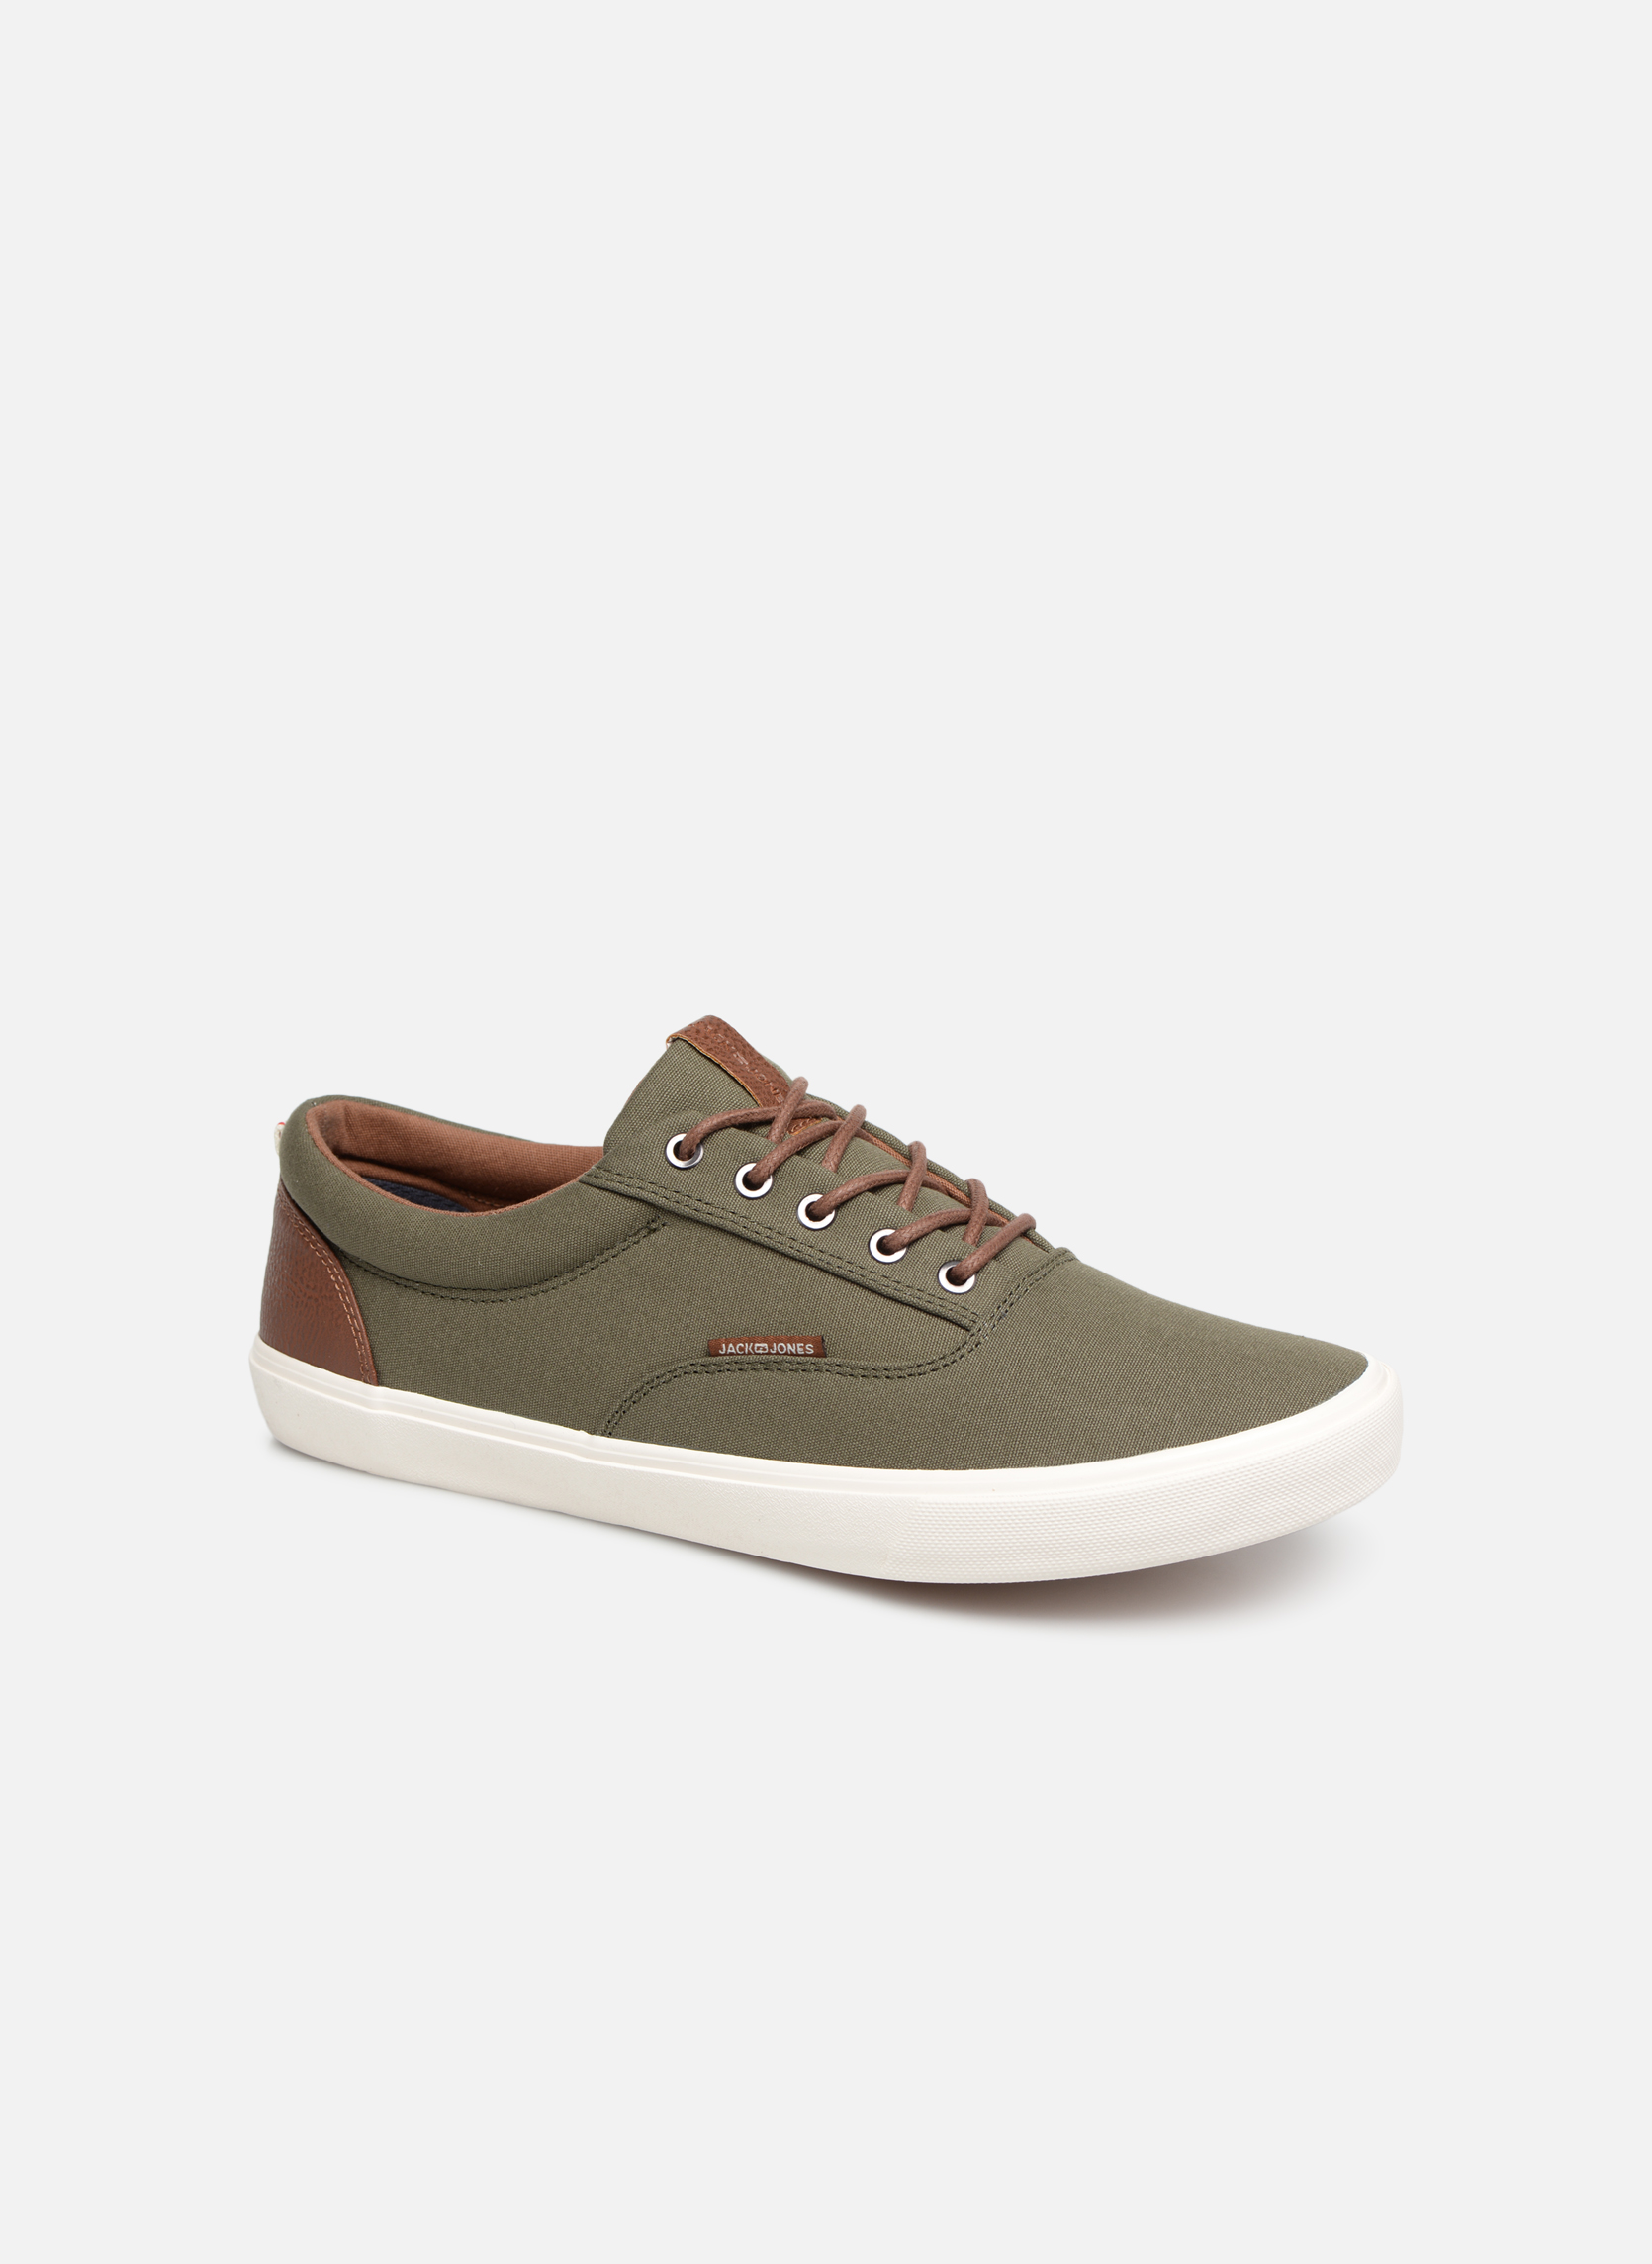 Sneakers Jack & Jones Groen